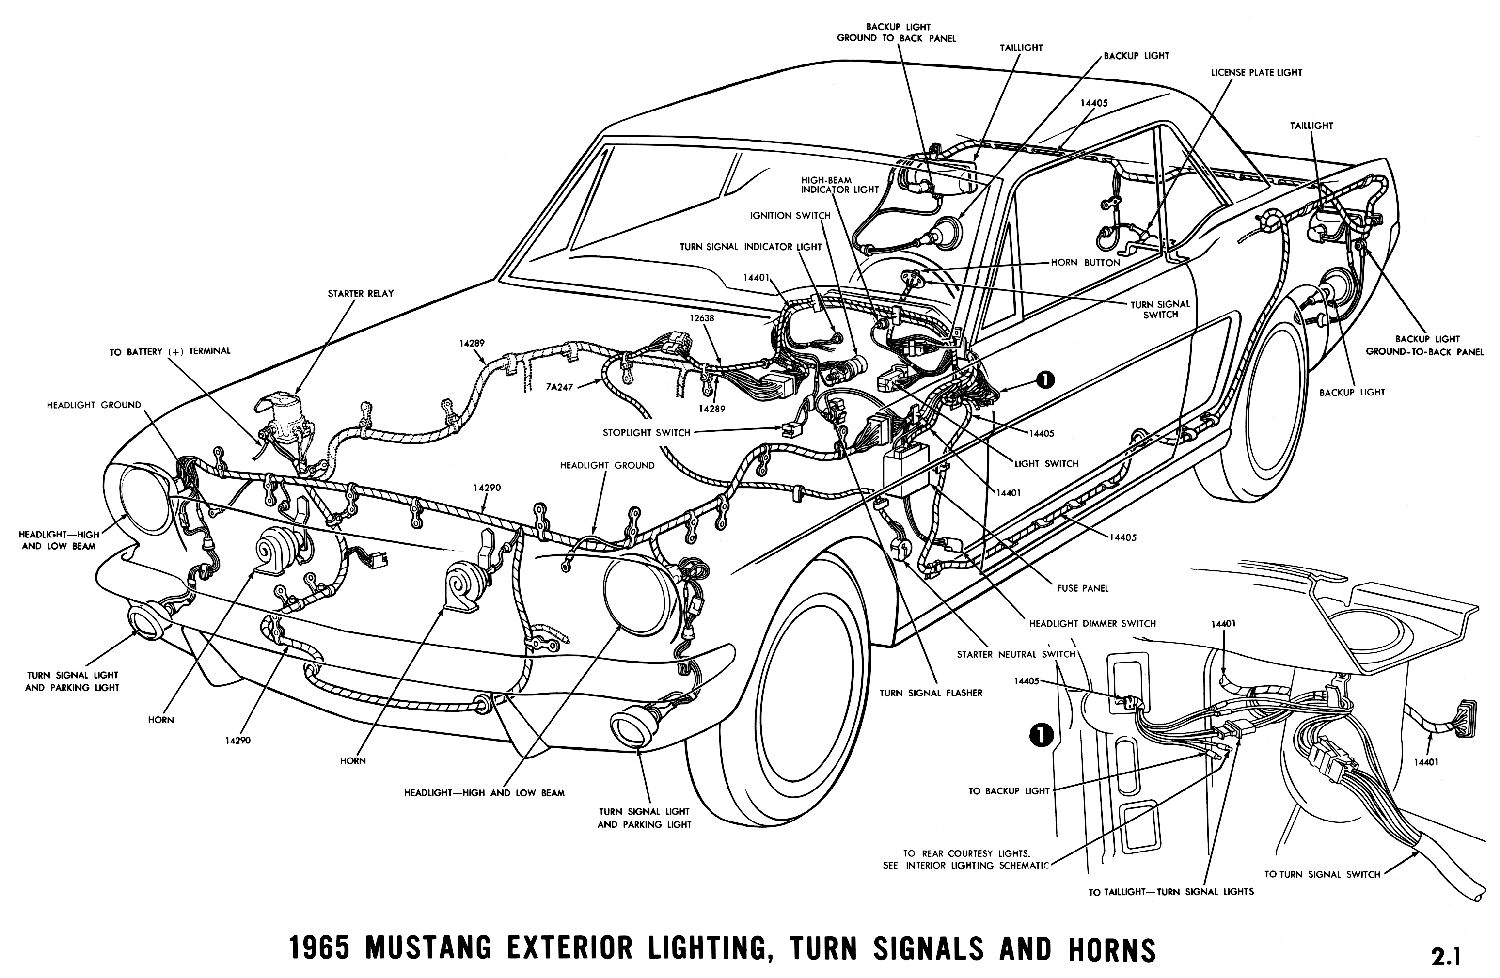 1965 Mustang Wiring Diagrams on 69 camaro wiring diagram